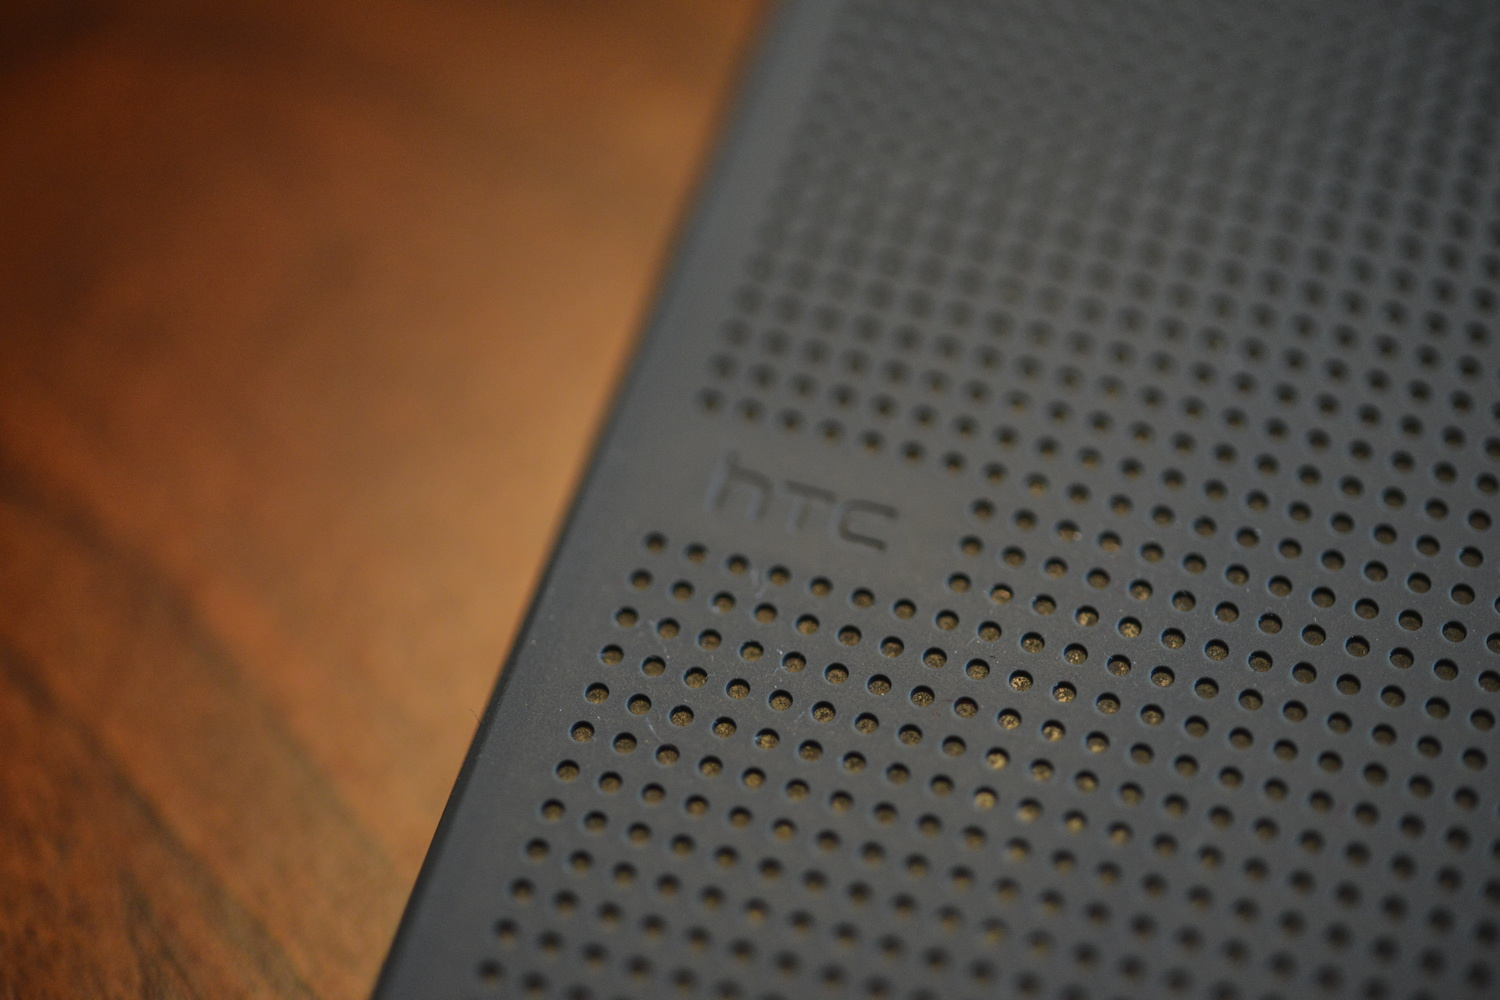 HTC One (M8) Android Smartphone Review